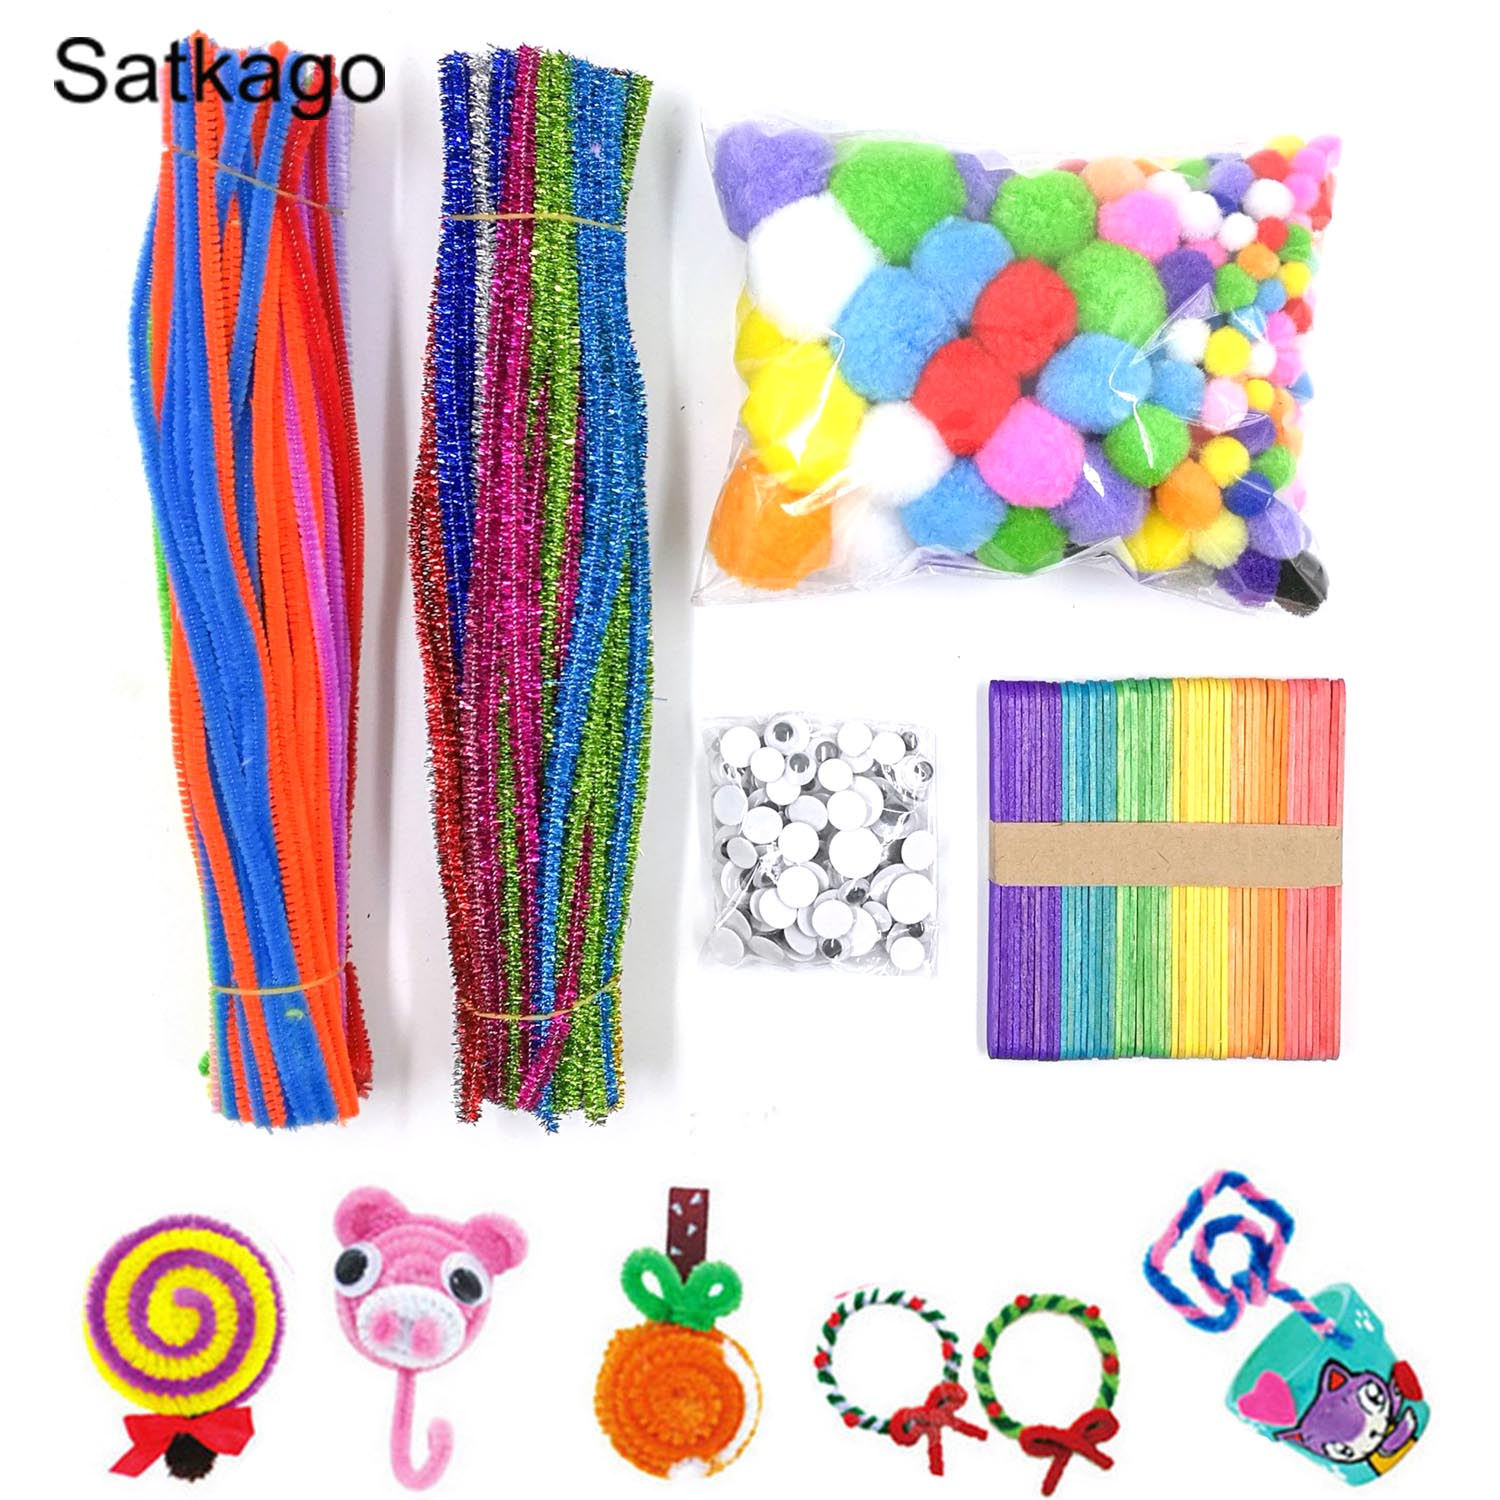 600pcs Pipe Cleaners Set Including Chenille Stems Wiggle Googly Eyes Pom Poms Craft Sticks For Kids DIY Craft Supplies